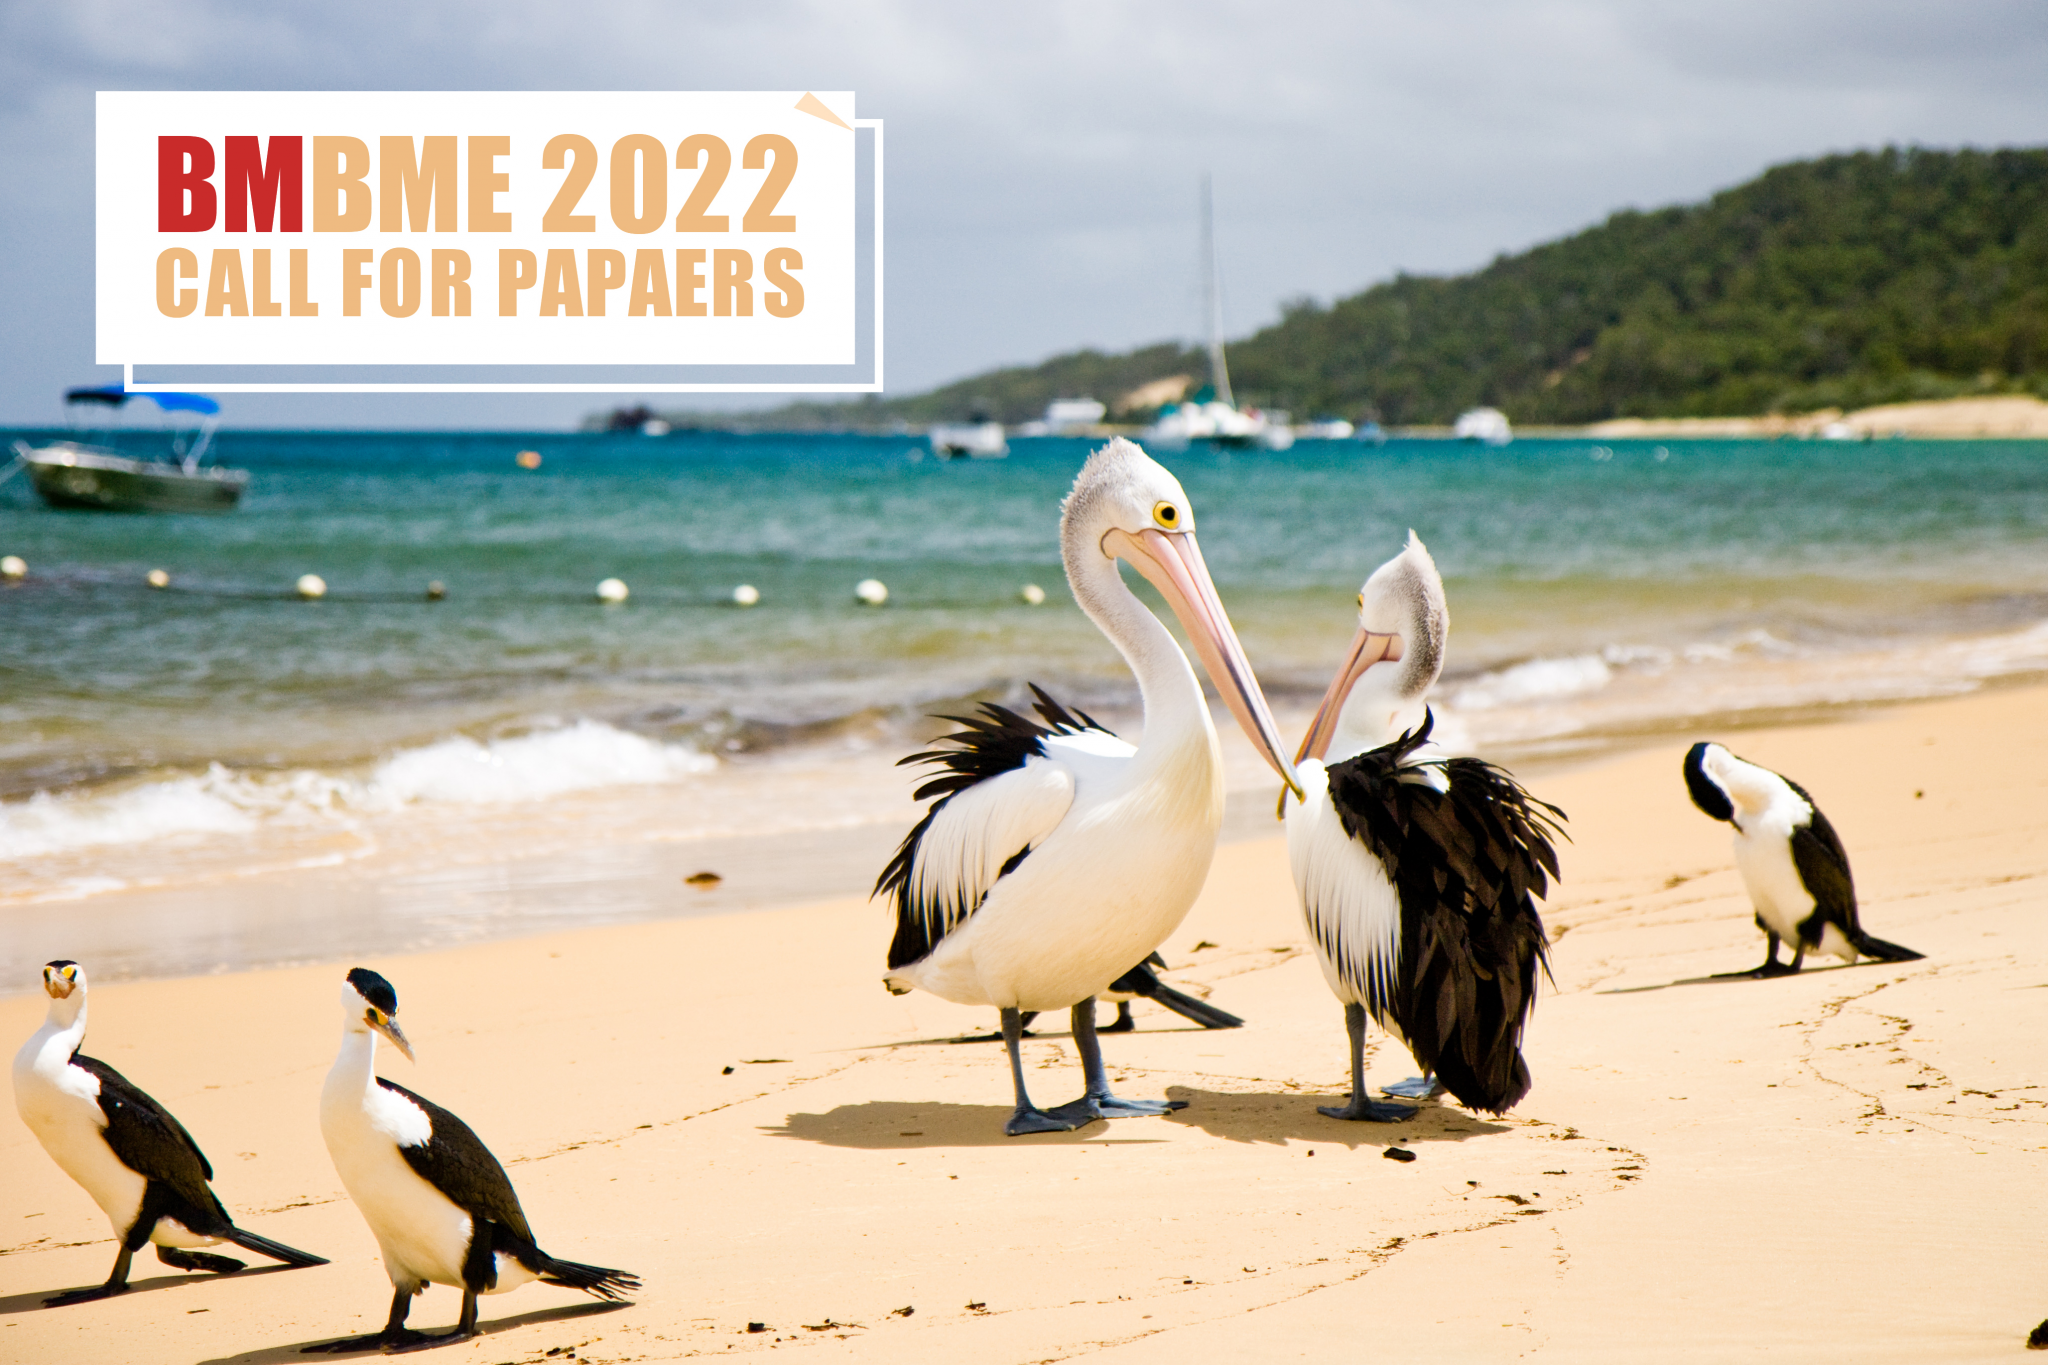 BMBME2022 Call for Papers